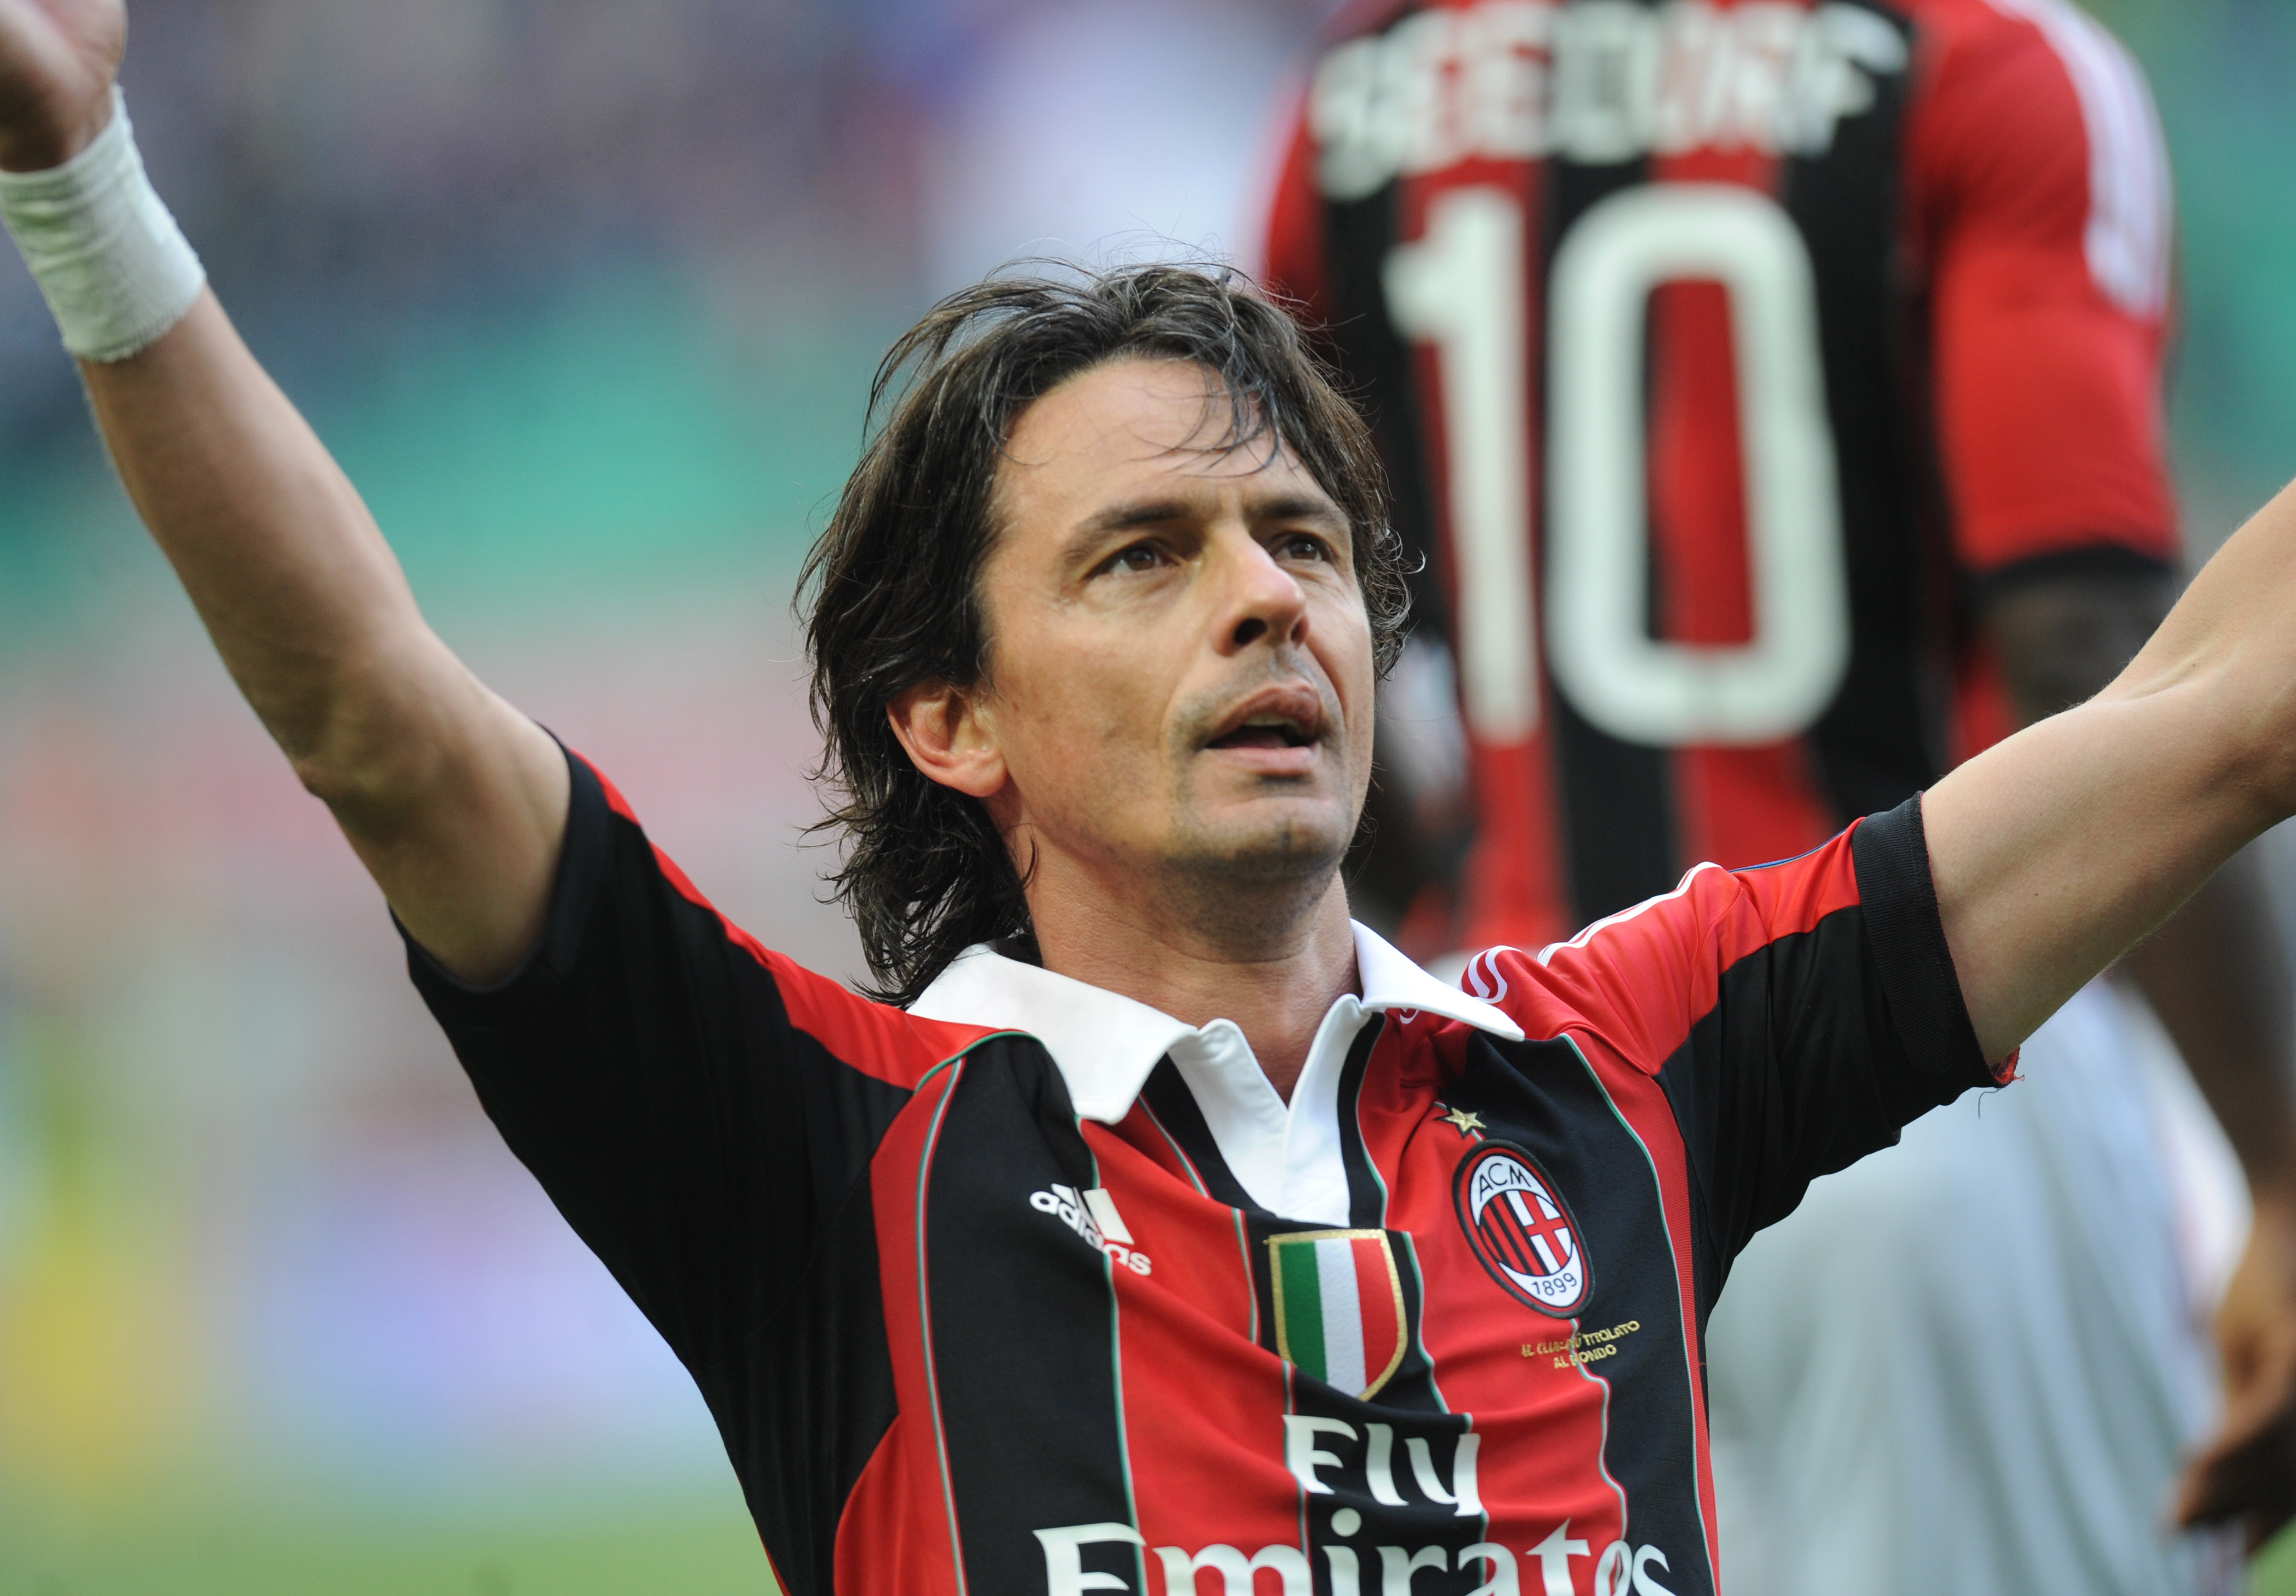 Milan Replaces Seedorf With Inzaghi As Coach